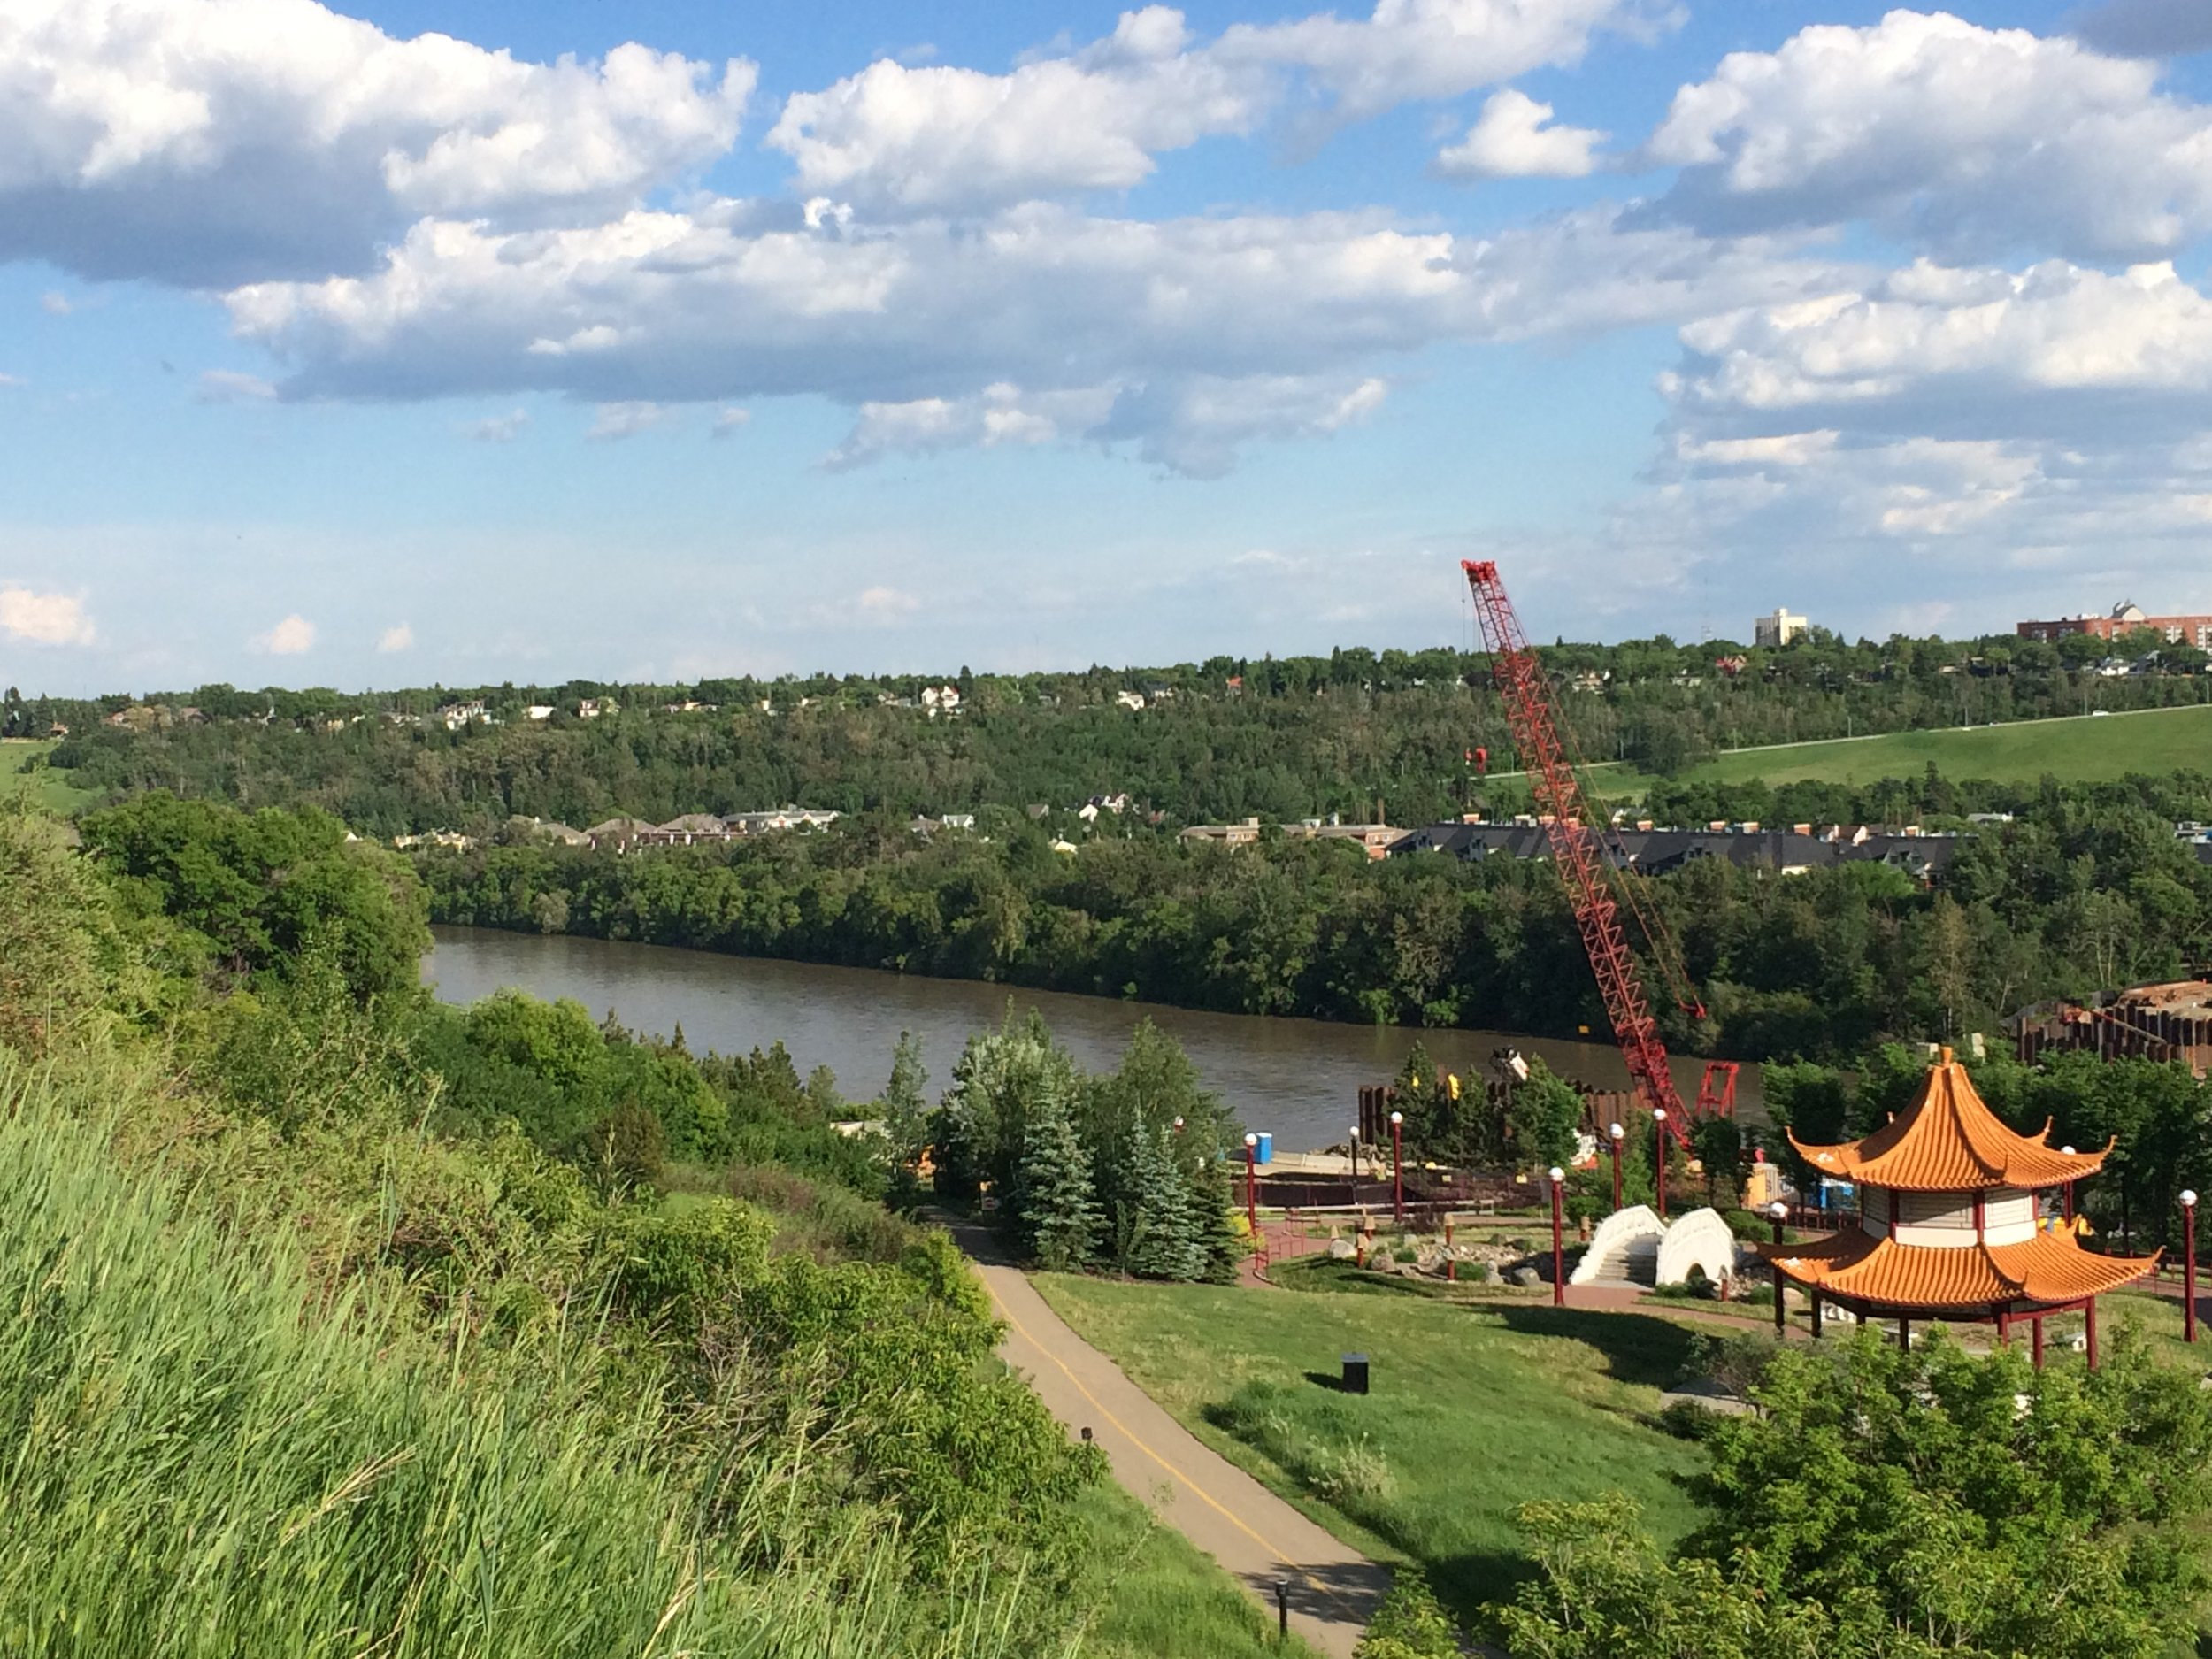 North Saskatchewan River which flows through Edmonton to Lake Winnipeg. Picture taken in Edmonton.